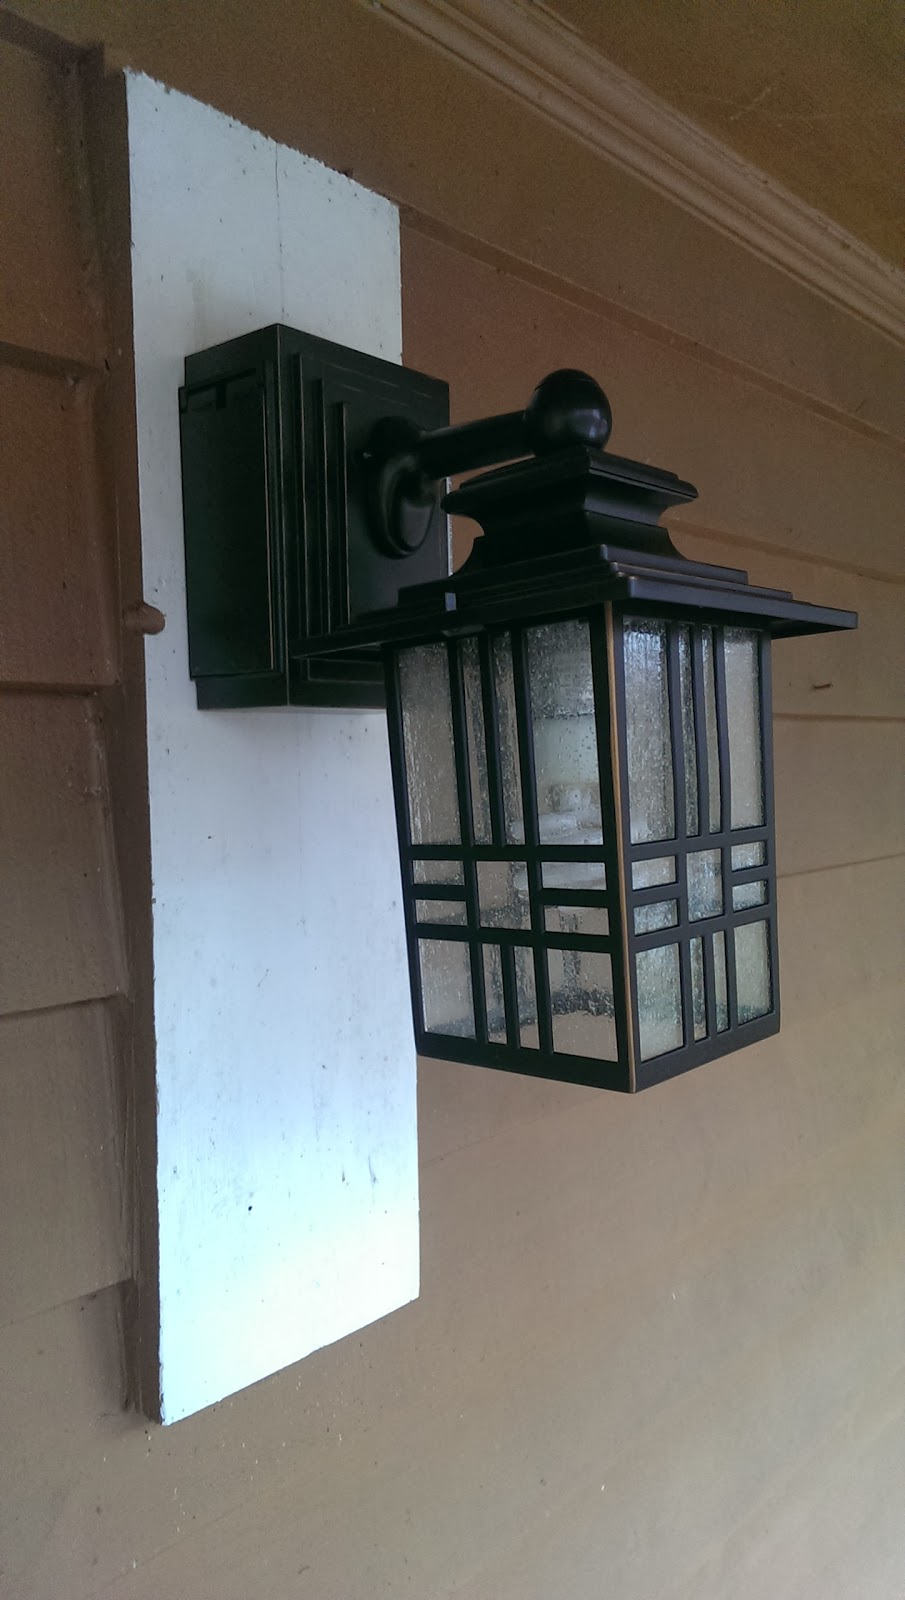 Call of DuVy: Project: Exterior light with built-in electrical outlet